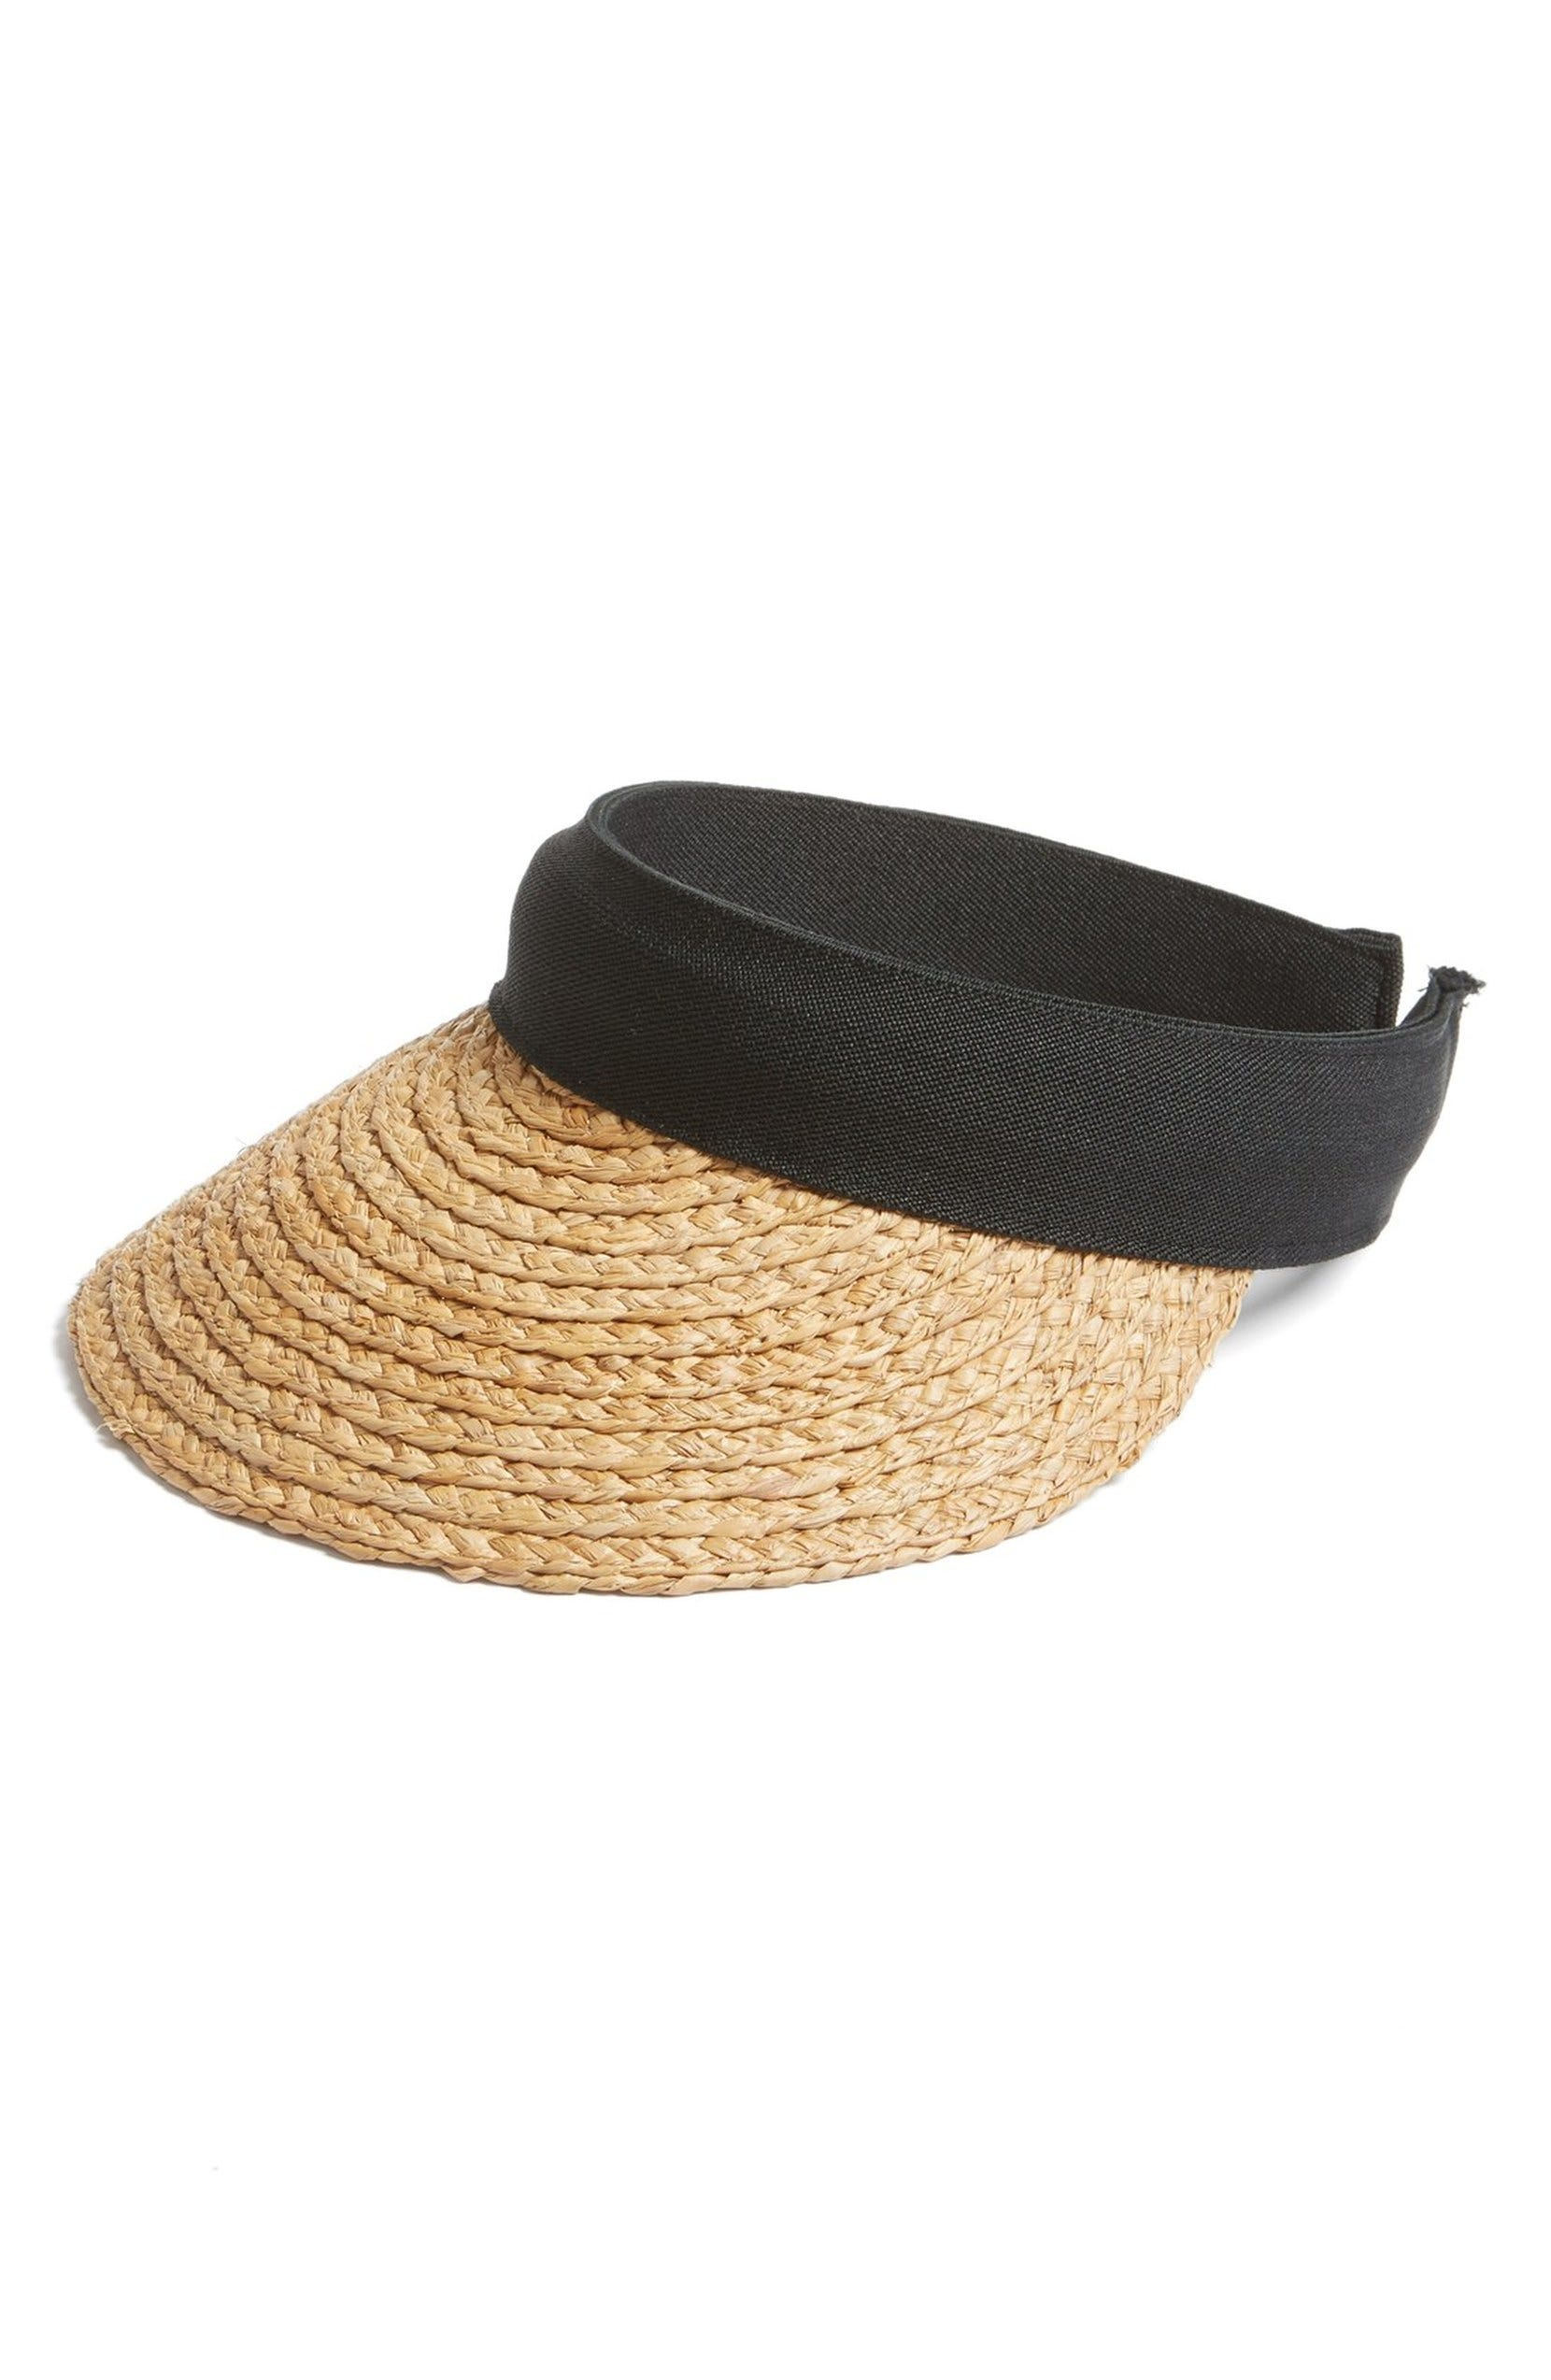 cb6763f30cf Straw Visors Are The New Summer Essential To Pack